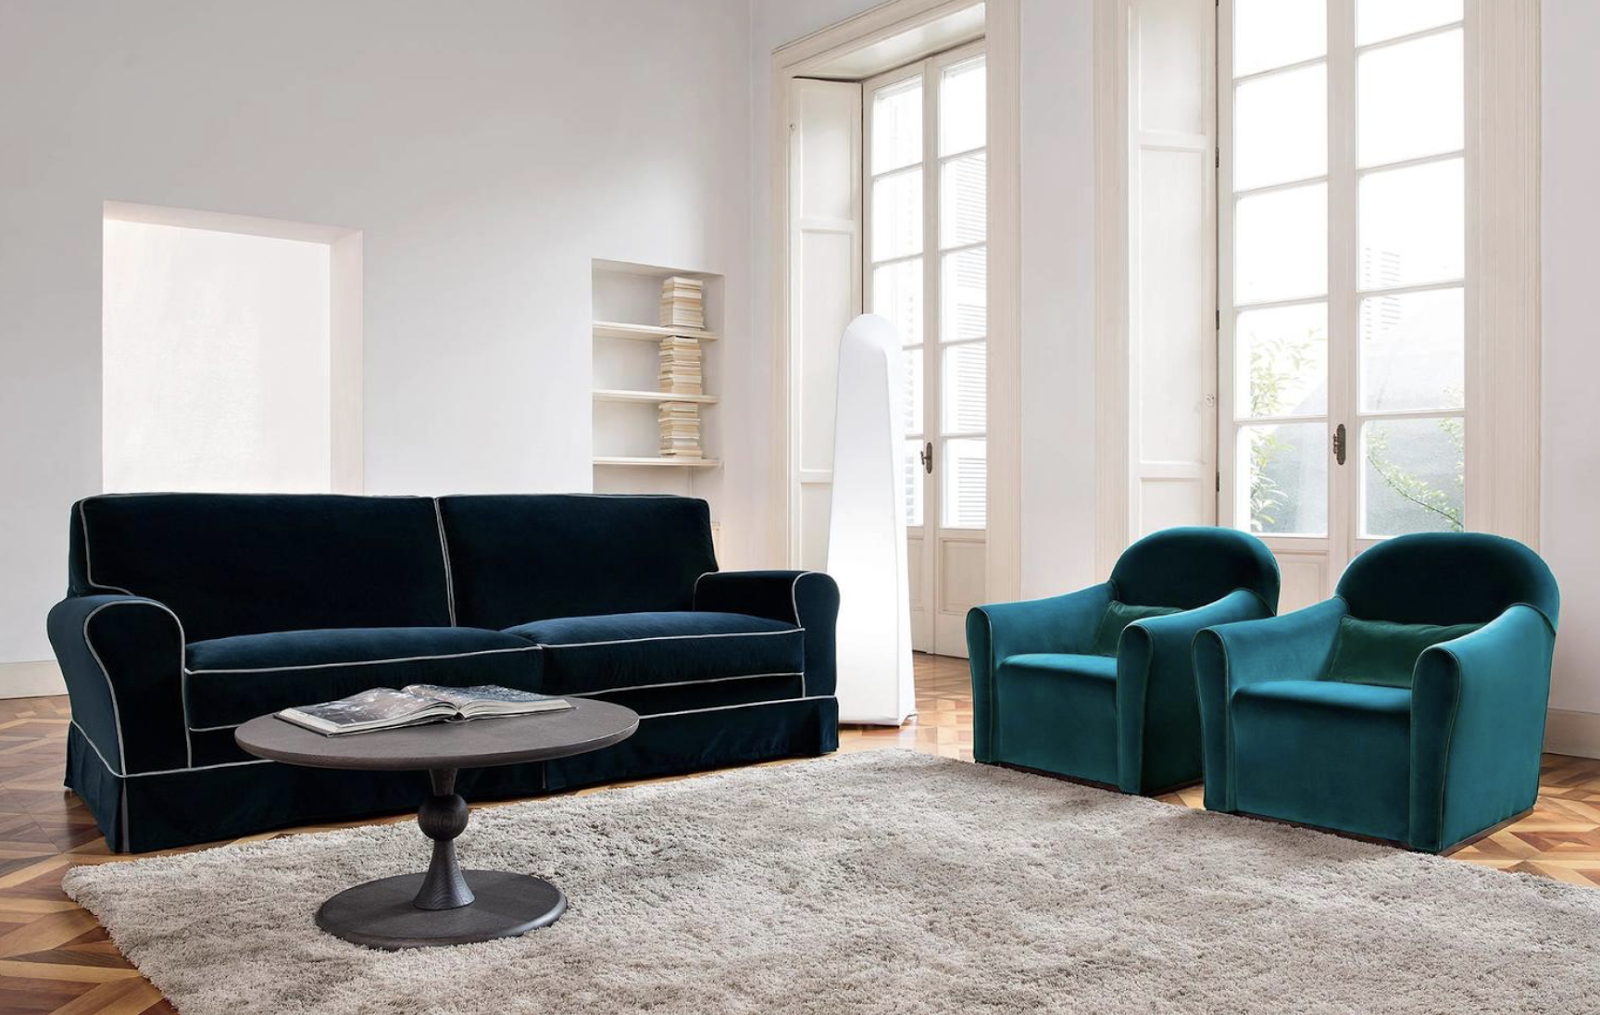 Momentoitalia italian furniture blog an italian for Contemporary style furniture